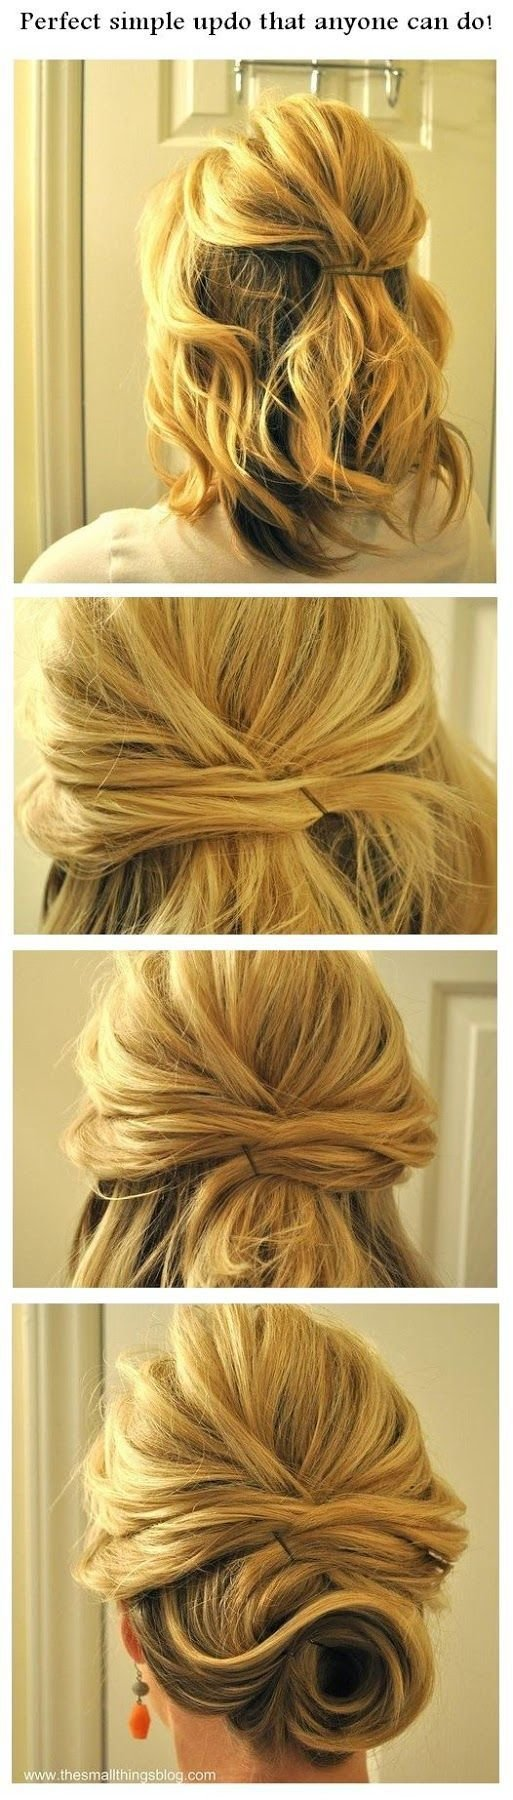 New 10 Amazing Step By Step Hairstyles For Medium Length Hair Ideas With Pictures